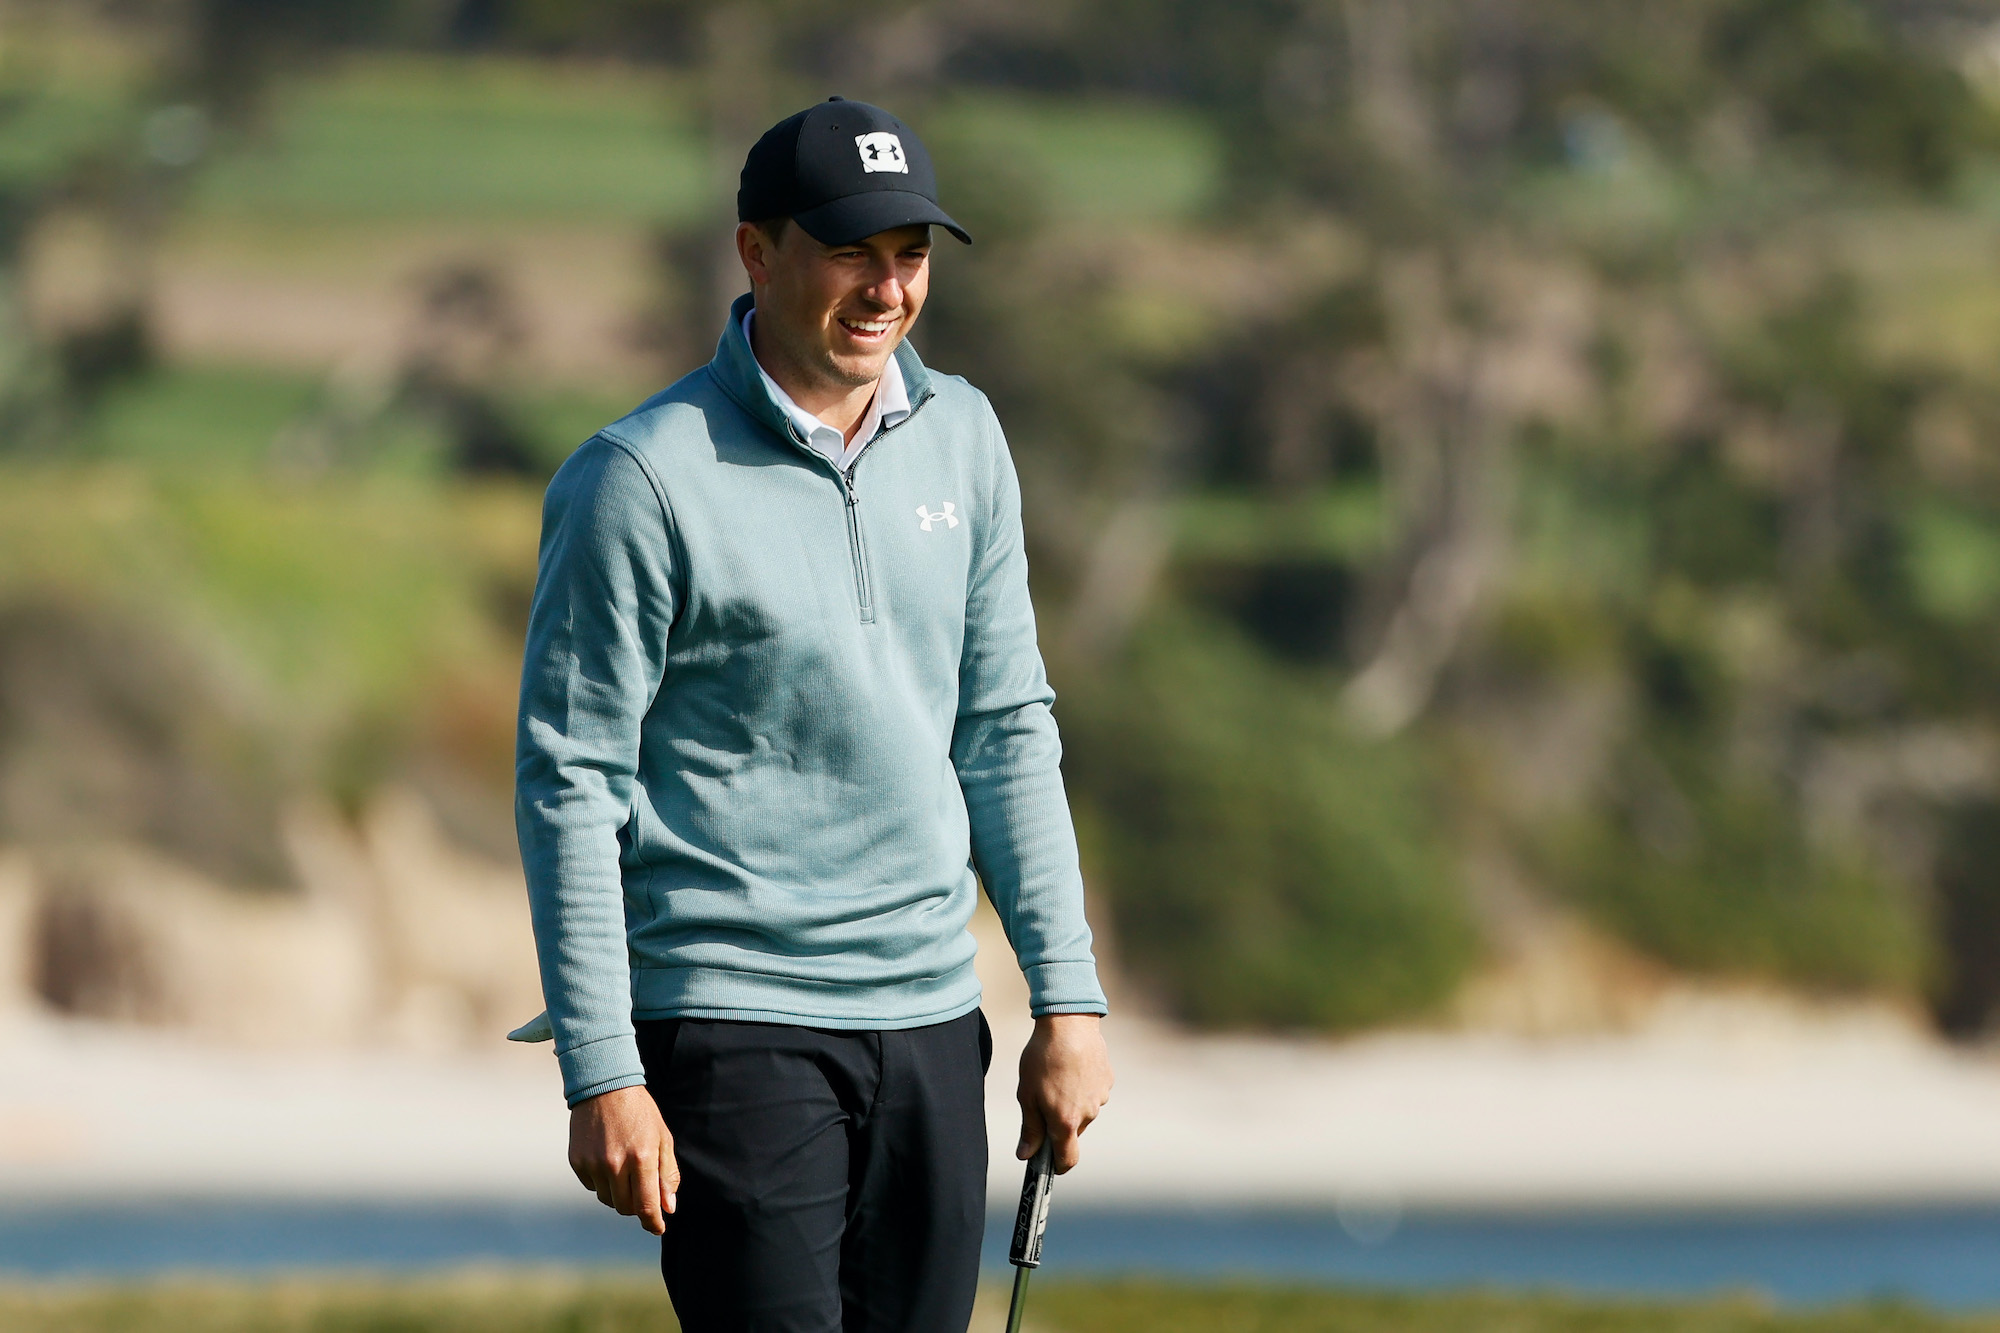 2021 AT&T Pebble Beach Pro-Am: Round 3 - Jordan Laughs on No. 17